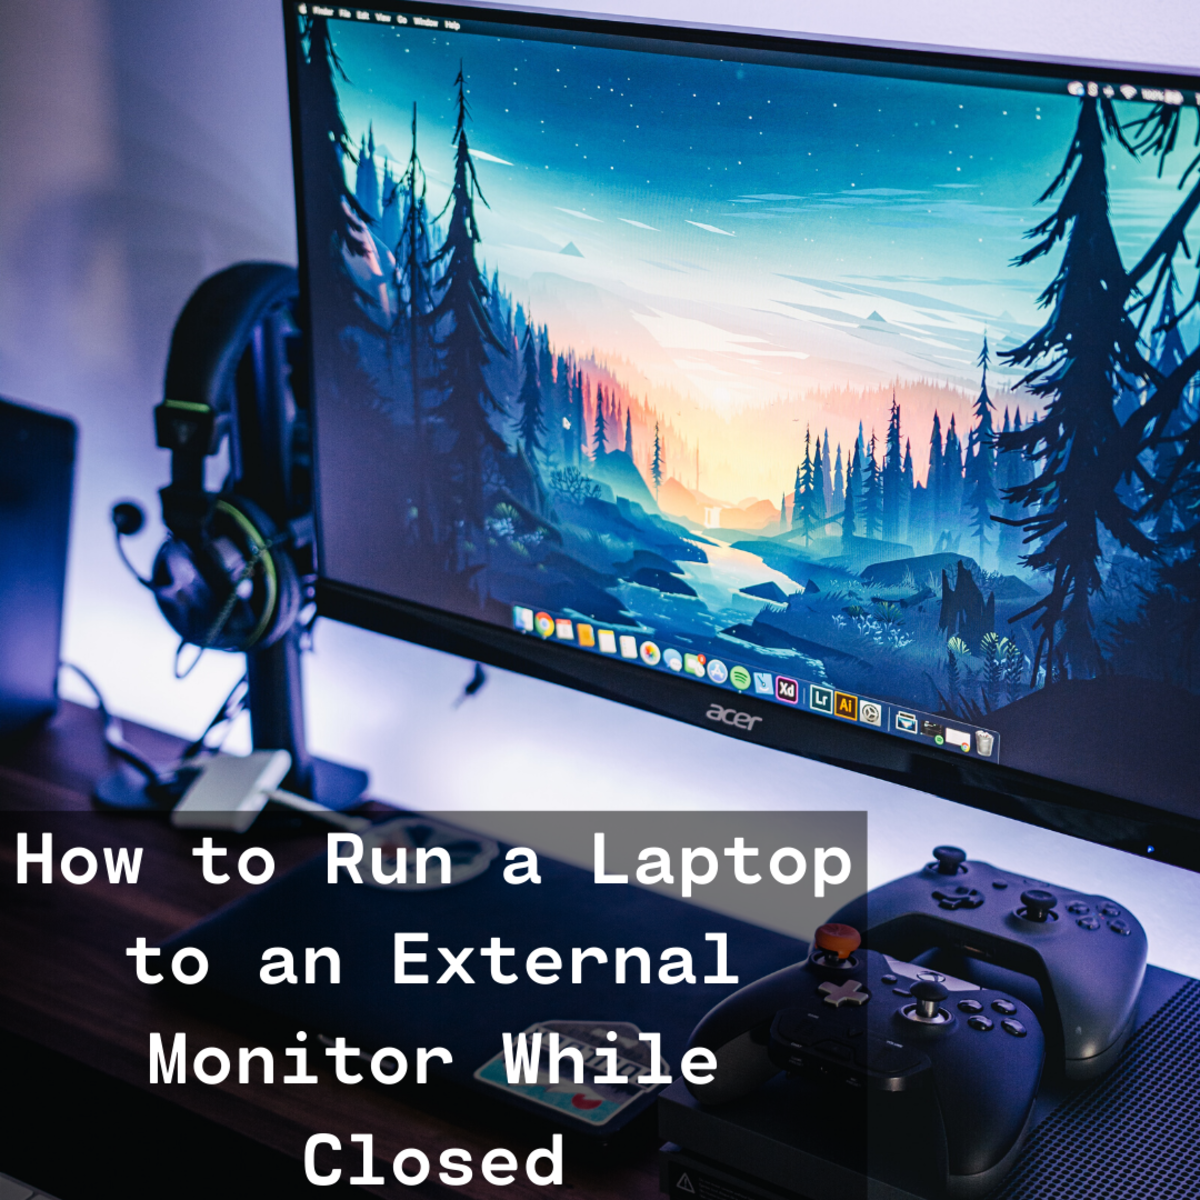 Learn how to hook up your laptop to an external monitor while keeping the laptop lid closed.